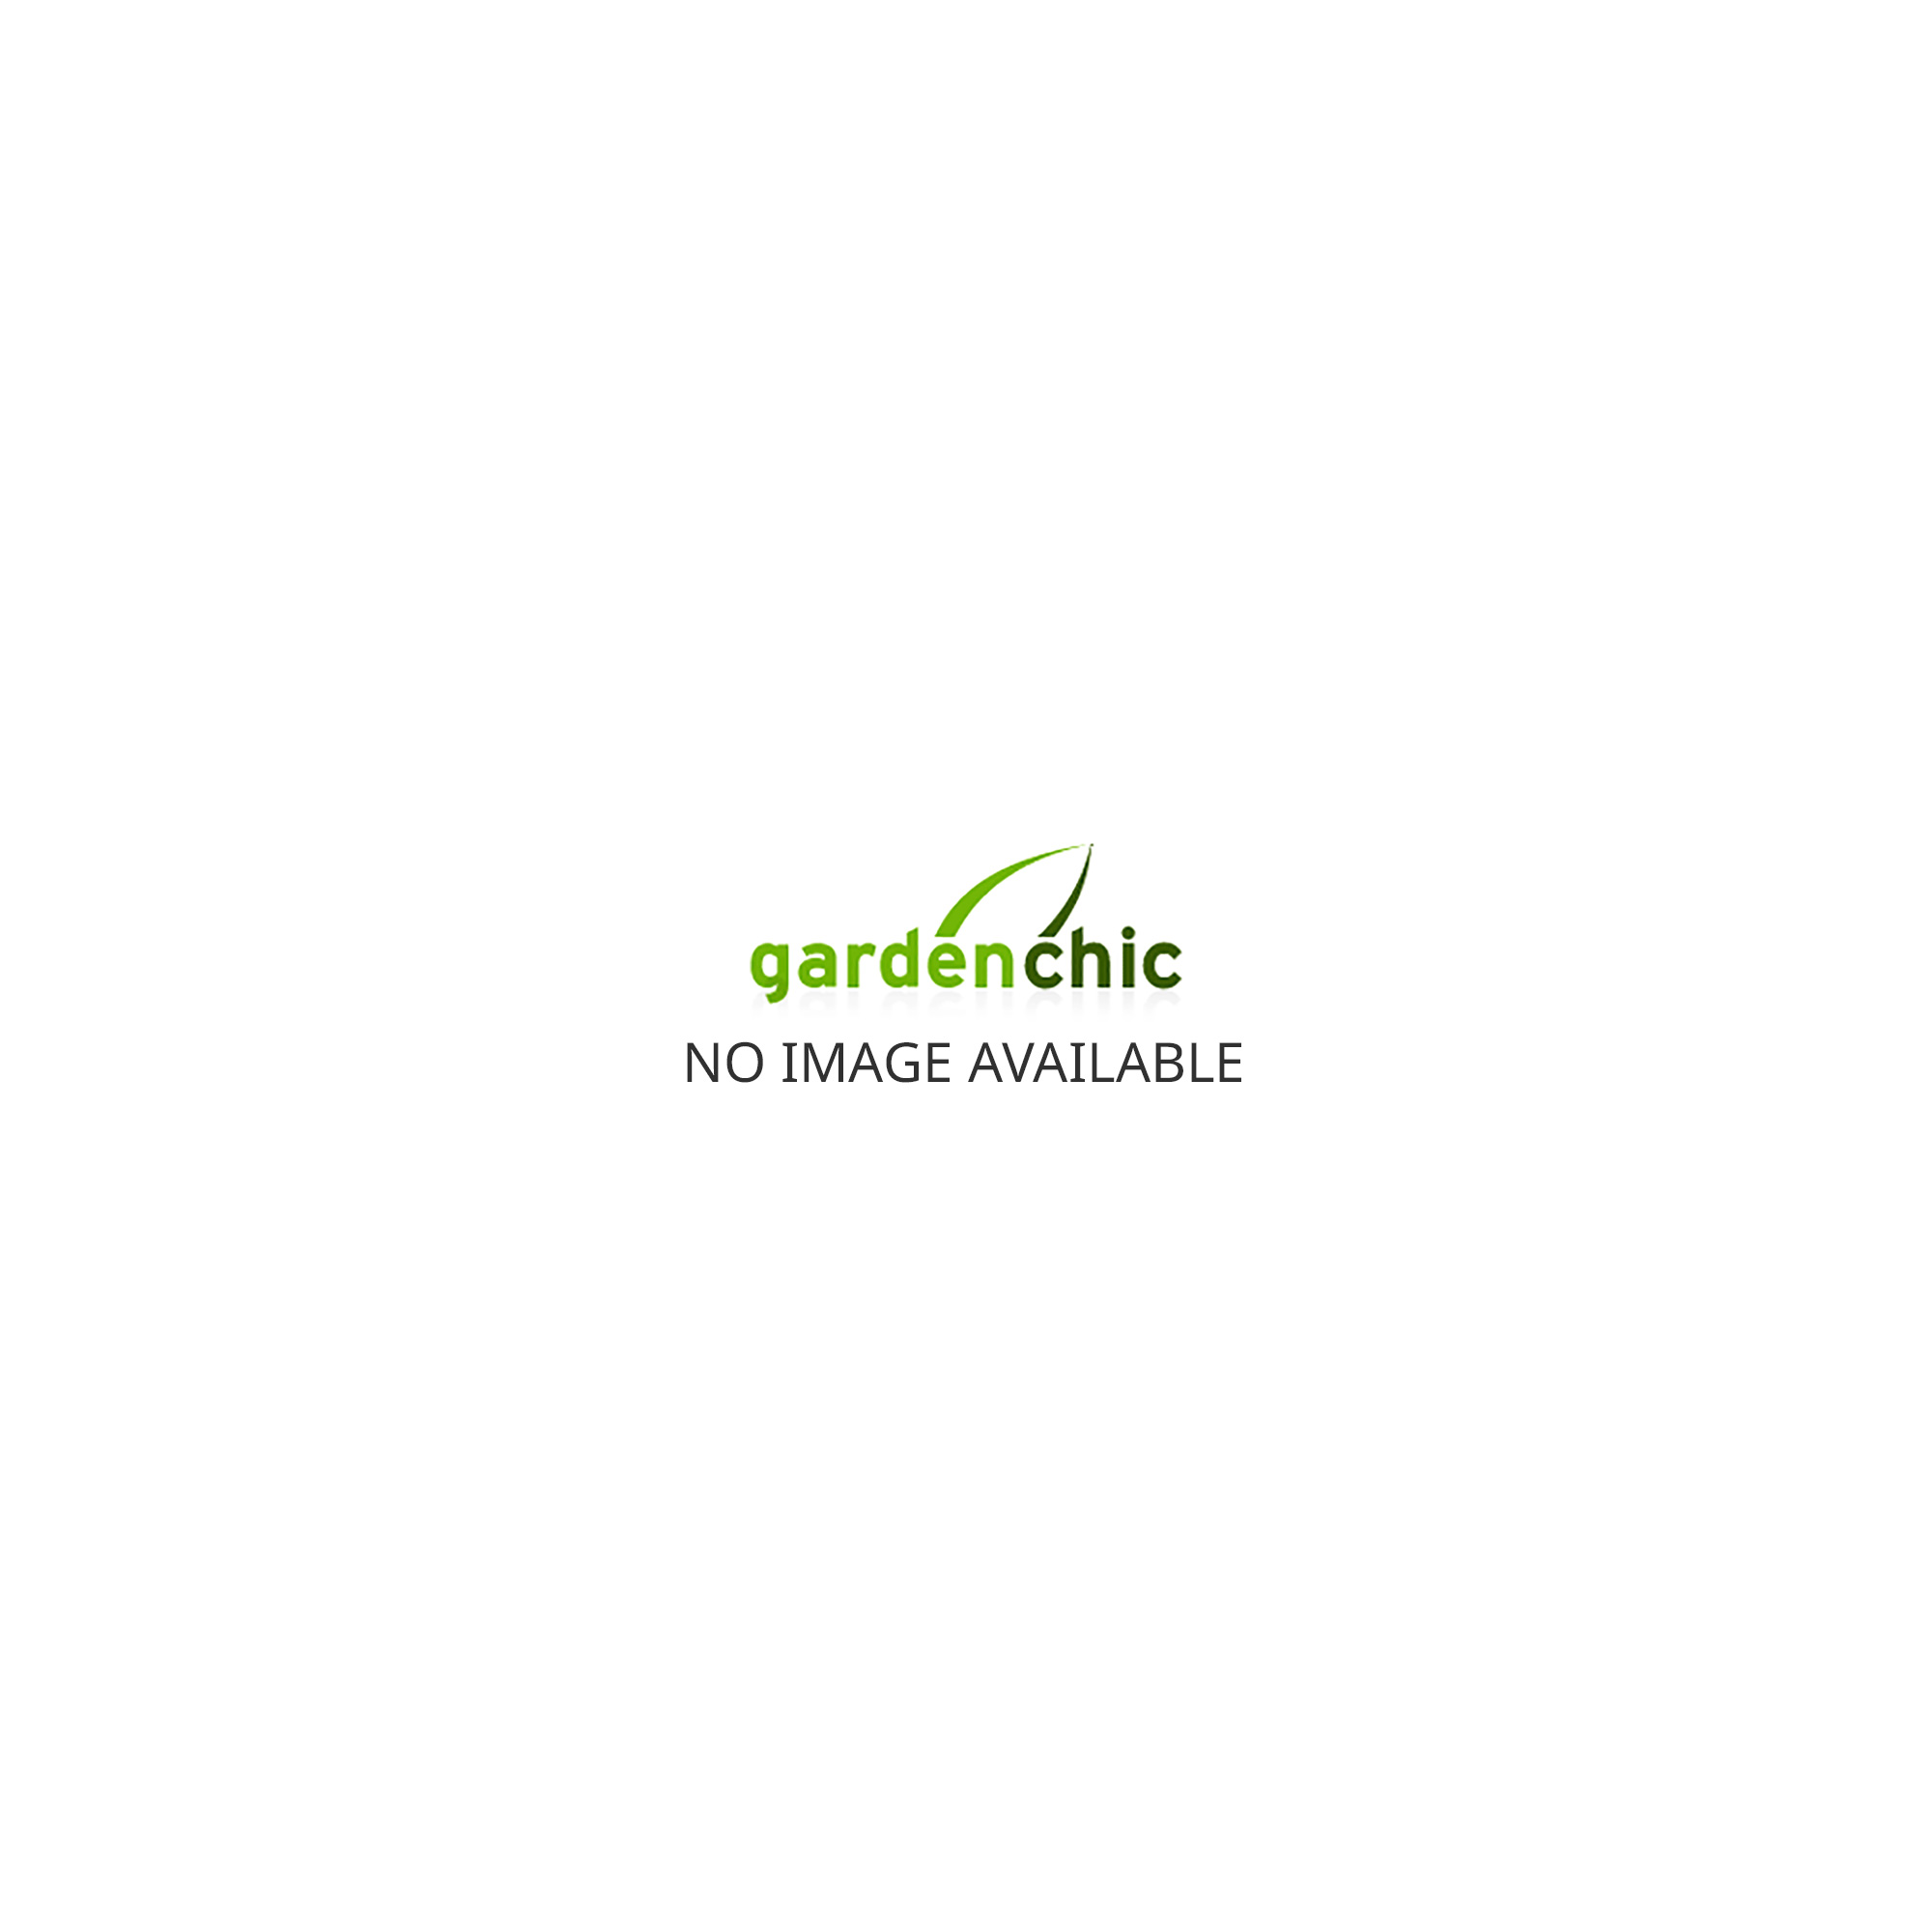 Premium Greenhouse 9ft x 12ft (Aluminium) FREE Staging, Shelf and Autovent until May 2018